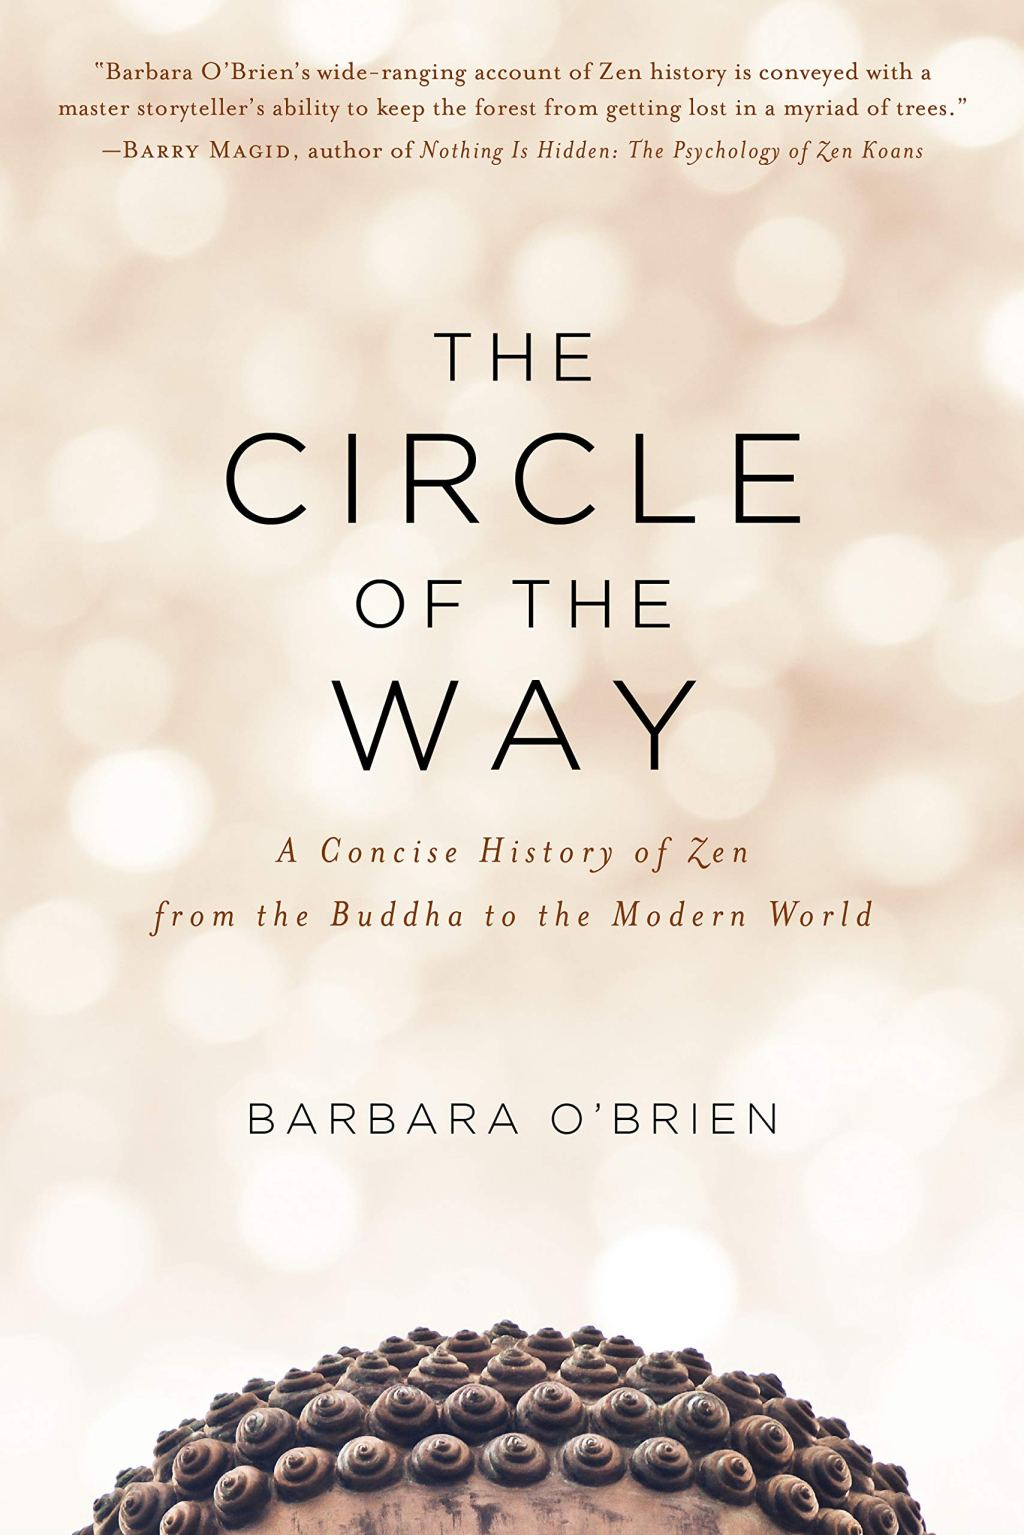 The Circle of the Way: A Concise History of Zen from the Buddha to the Modern, Barbara O'Brien (Shambhala, November 2019)